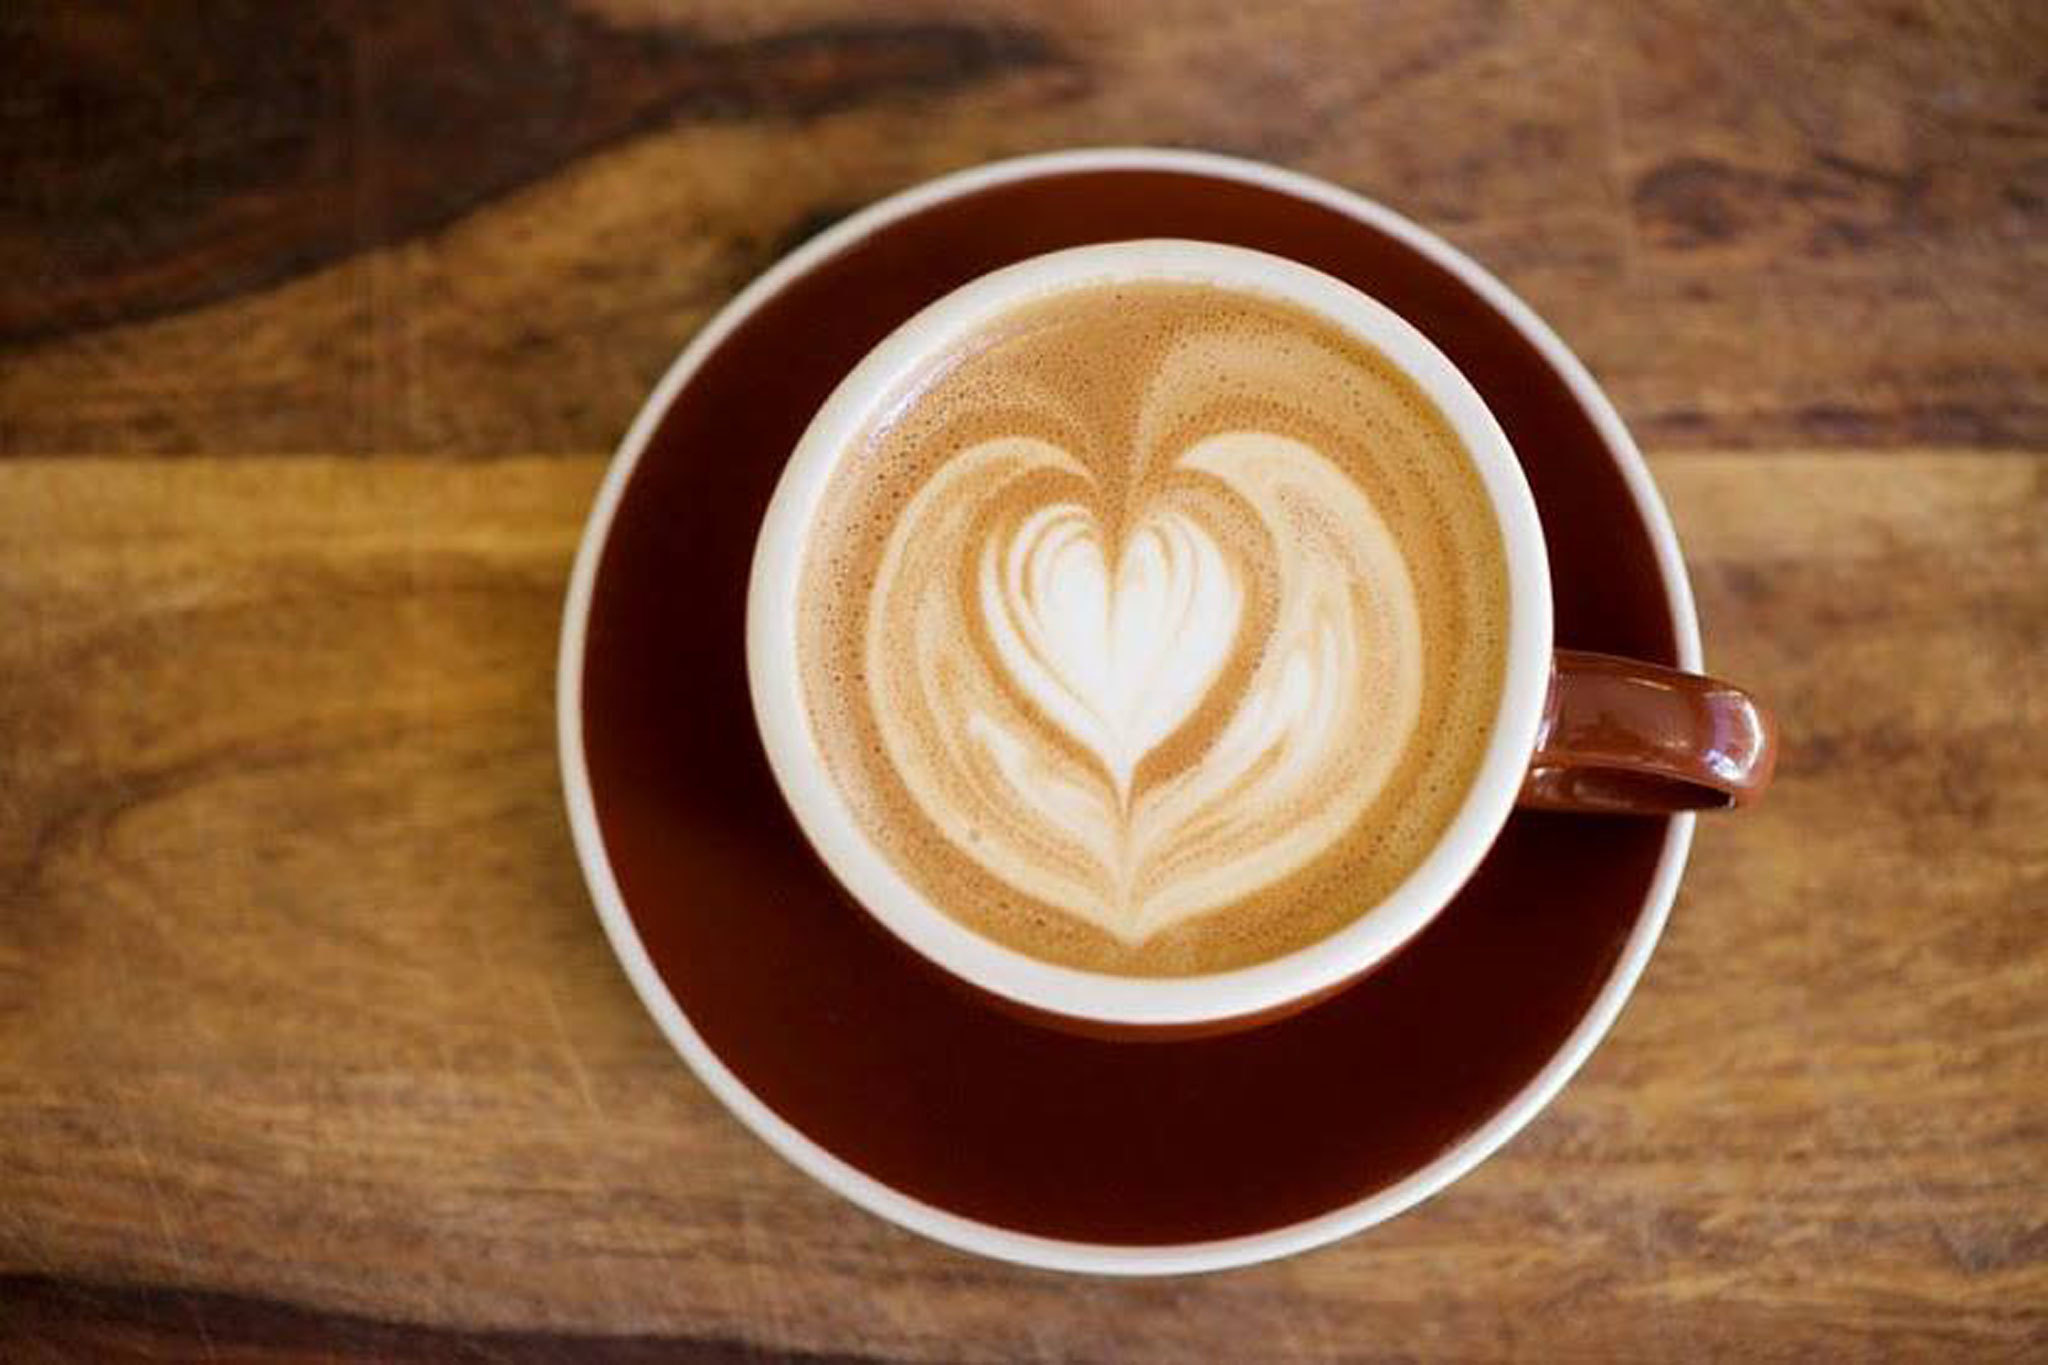 The best coffee shops in Hollywood